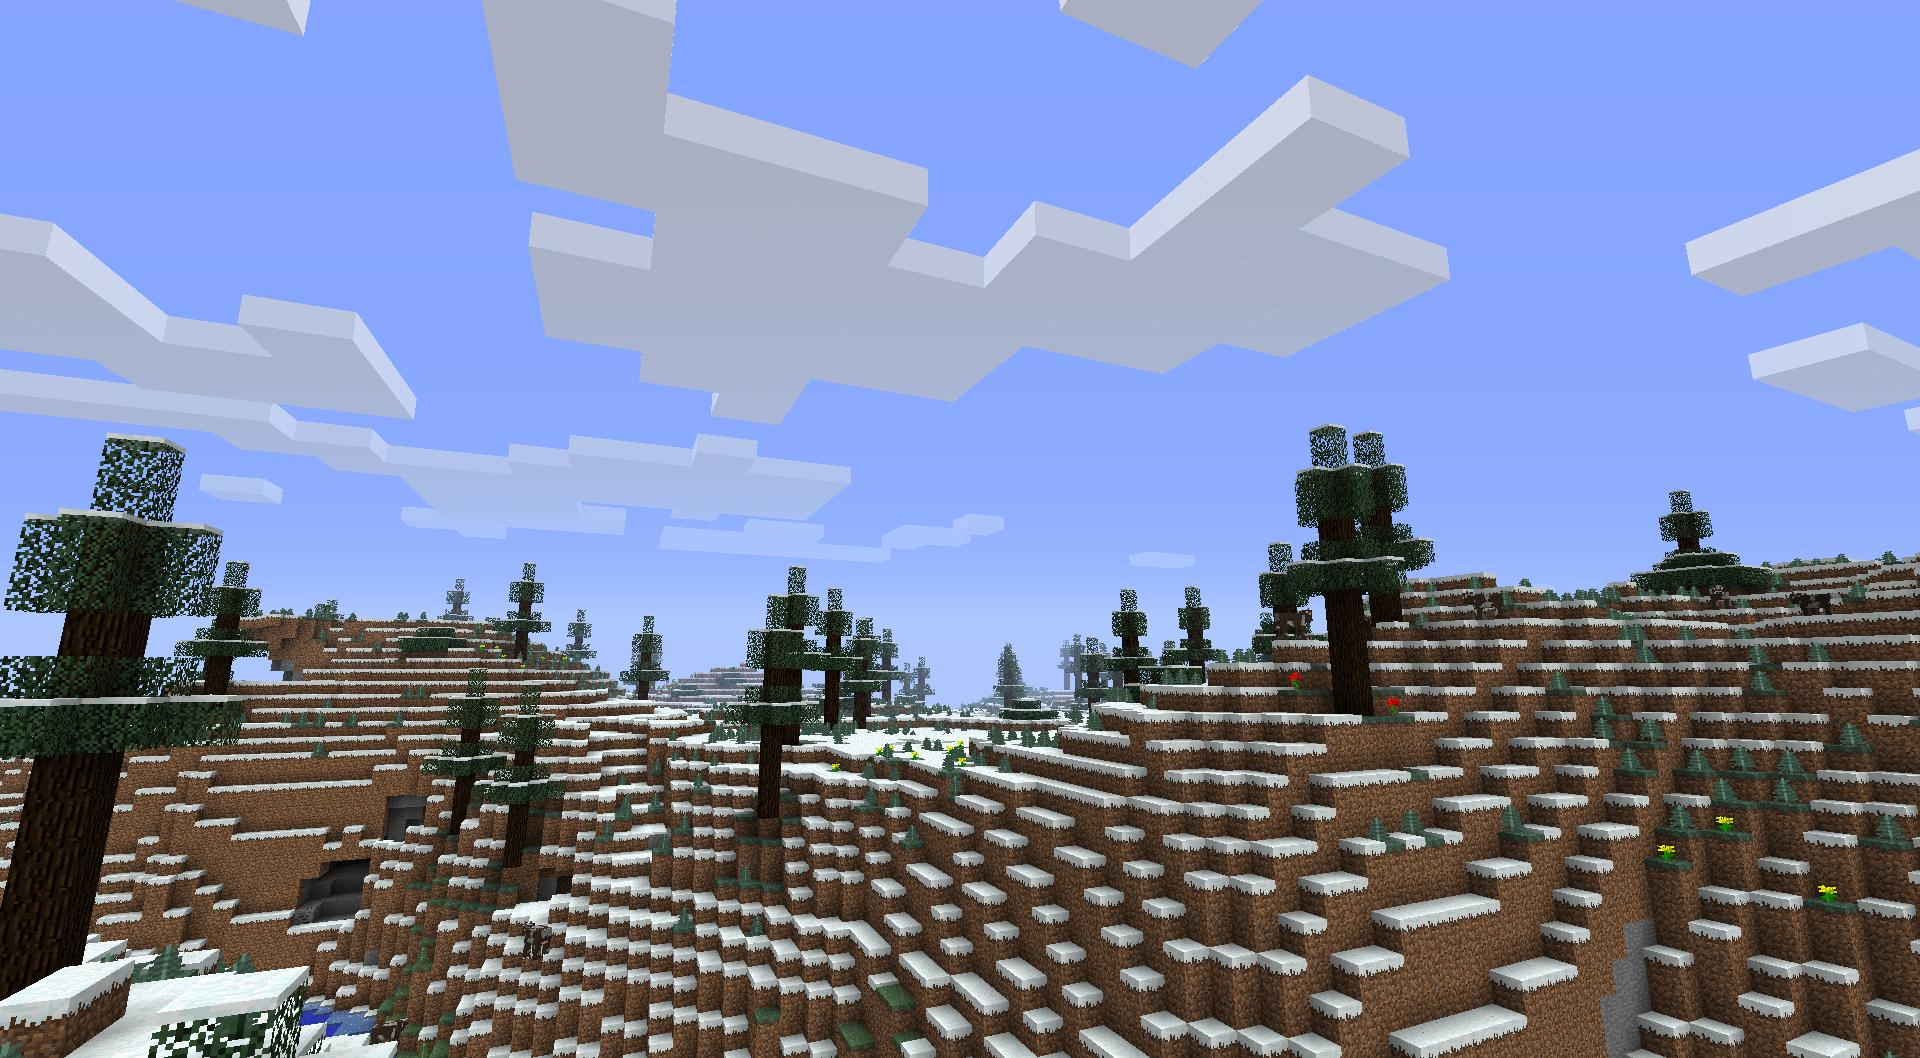 295c8  XcLHwFF Better Biomes Screenshots